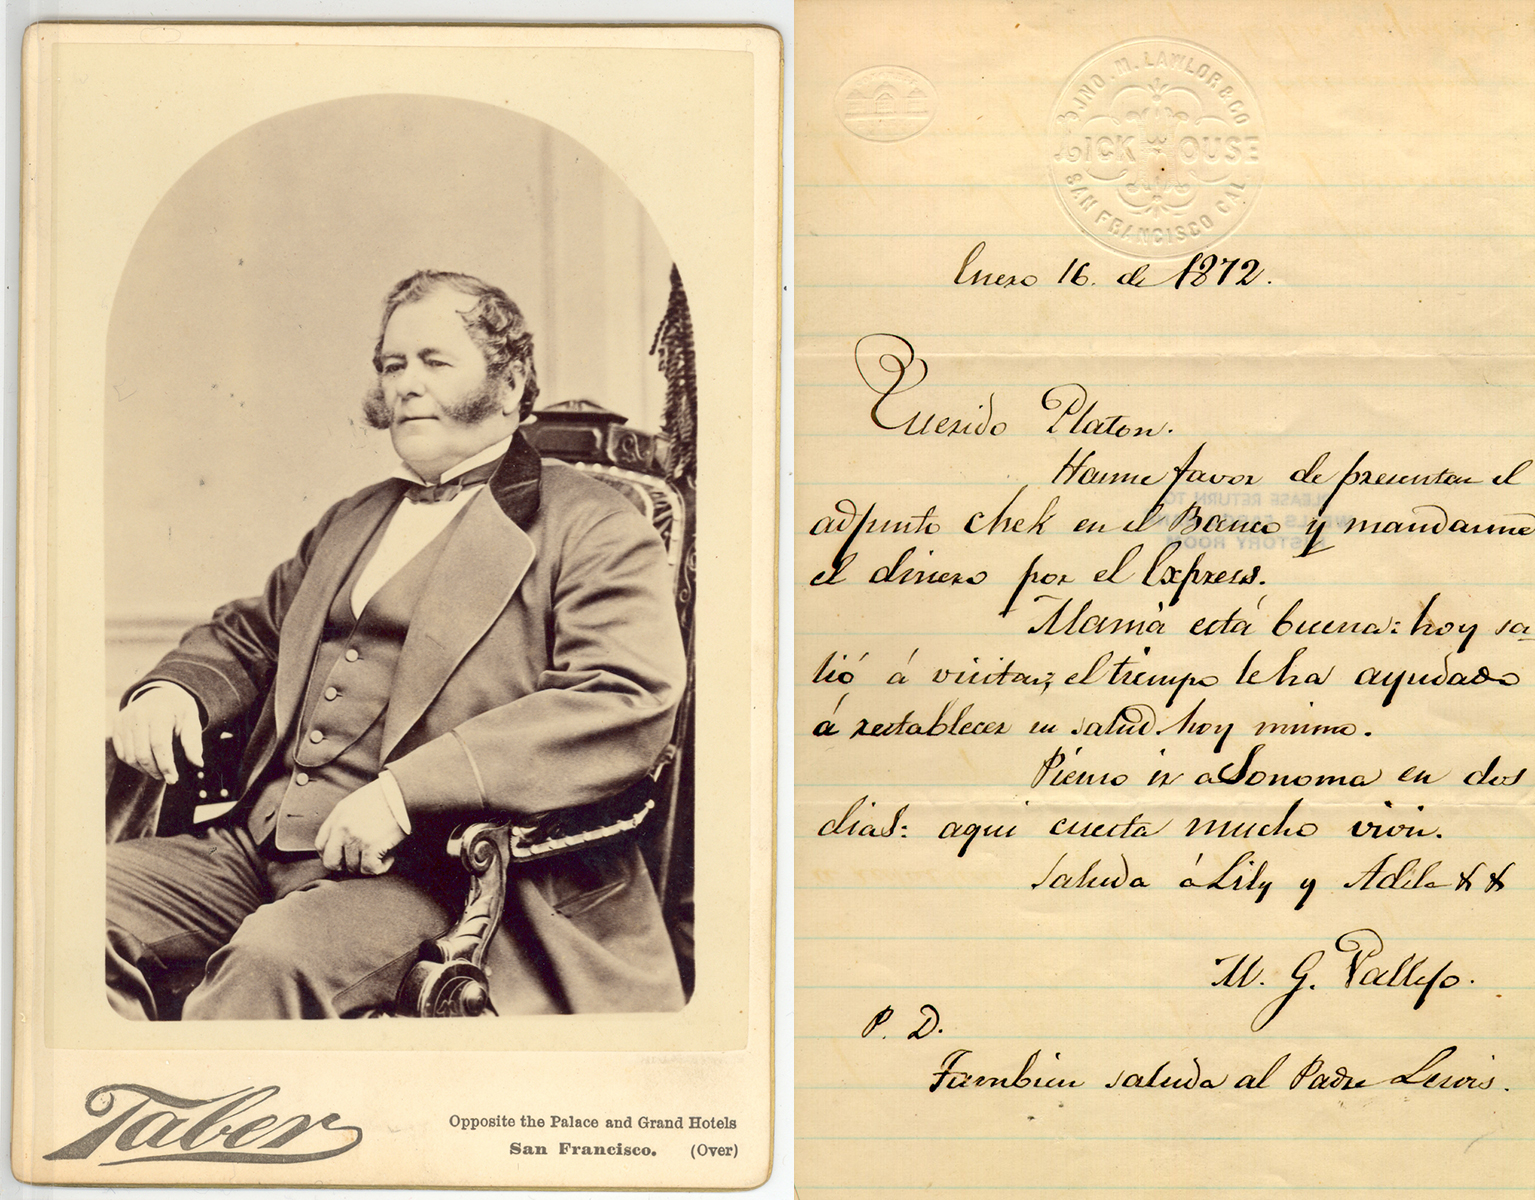 Black-and-white image of Gen. Mariano Vallejo wearing a suit and sitting in a chair. It is next to a handwritten letter in Spanish from 1872.